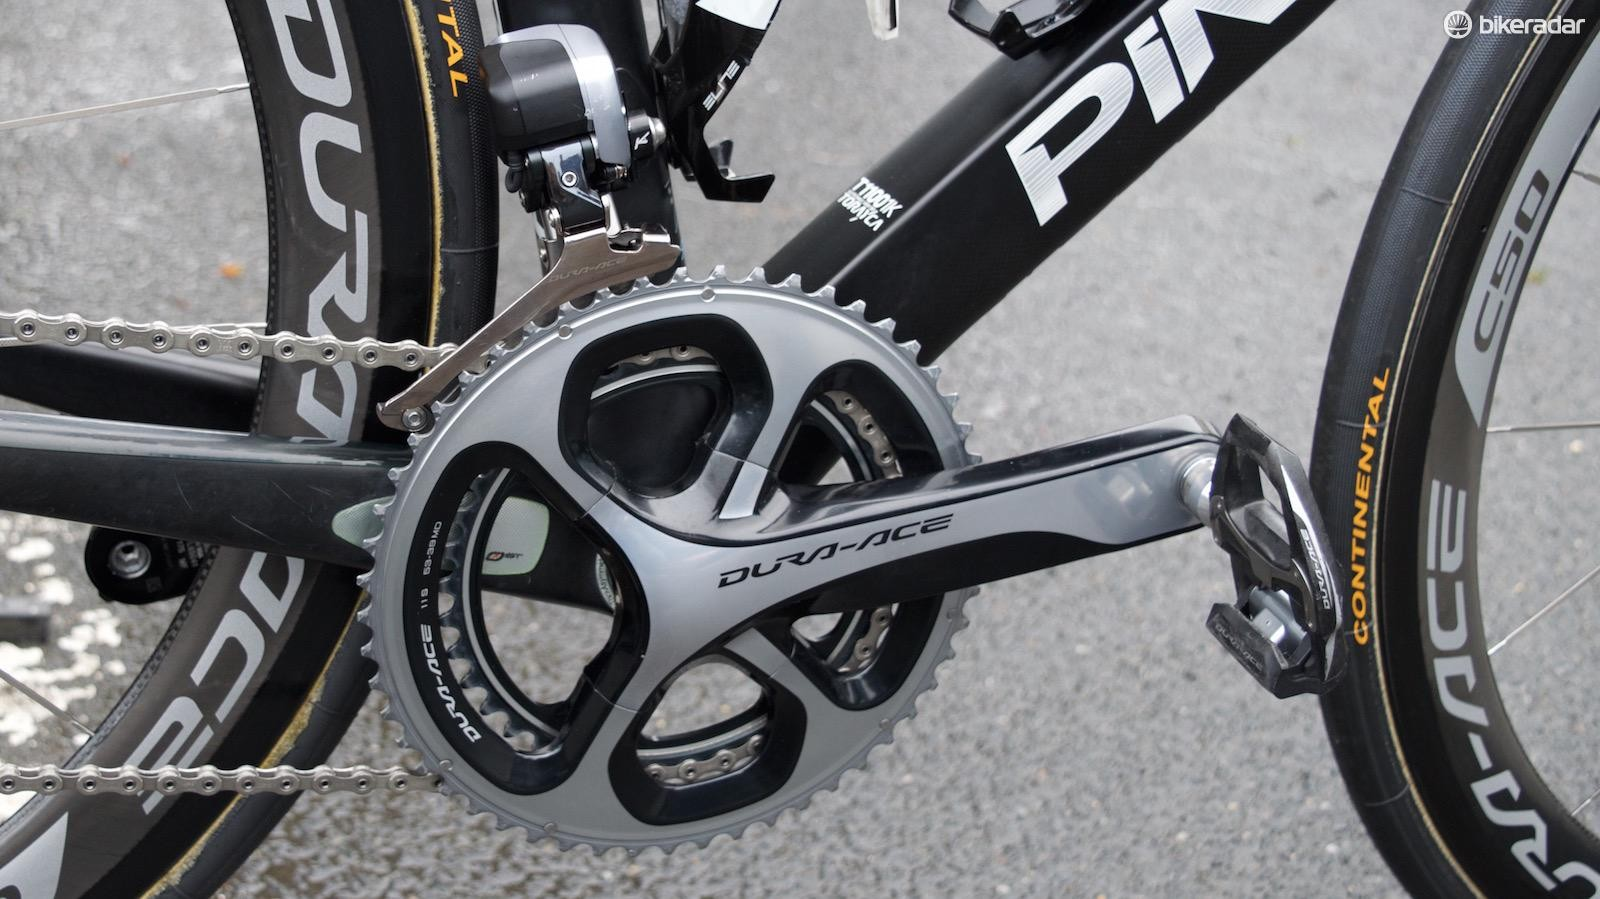 53x39t chainrings for Ian Stannard